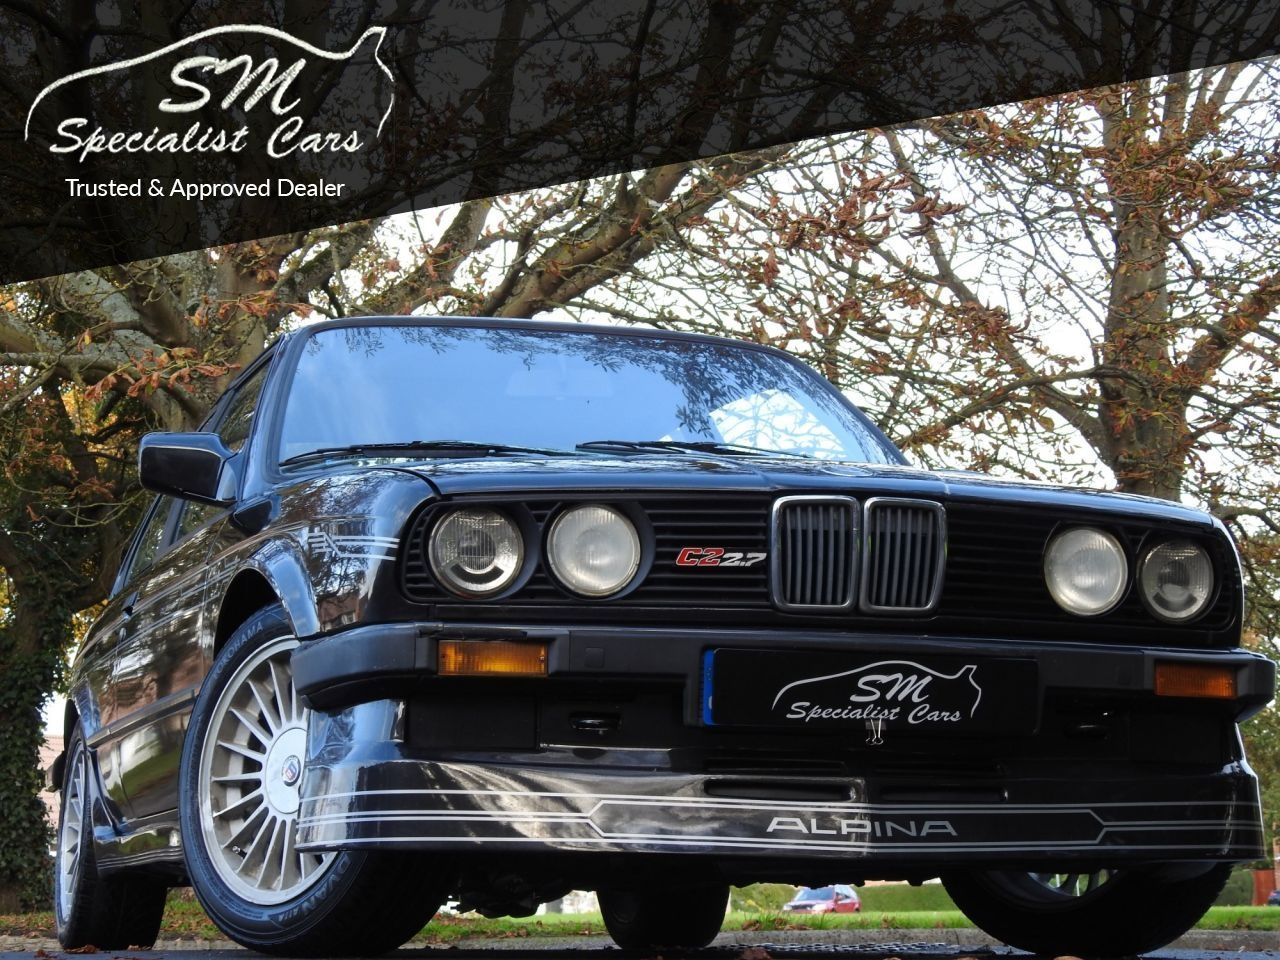 1986 Bmw Alpina 2 7 1986 C Bmw 3 Series C2 E30 9 995